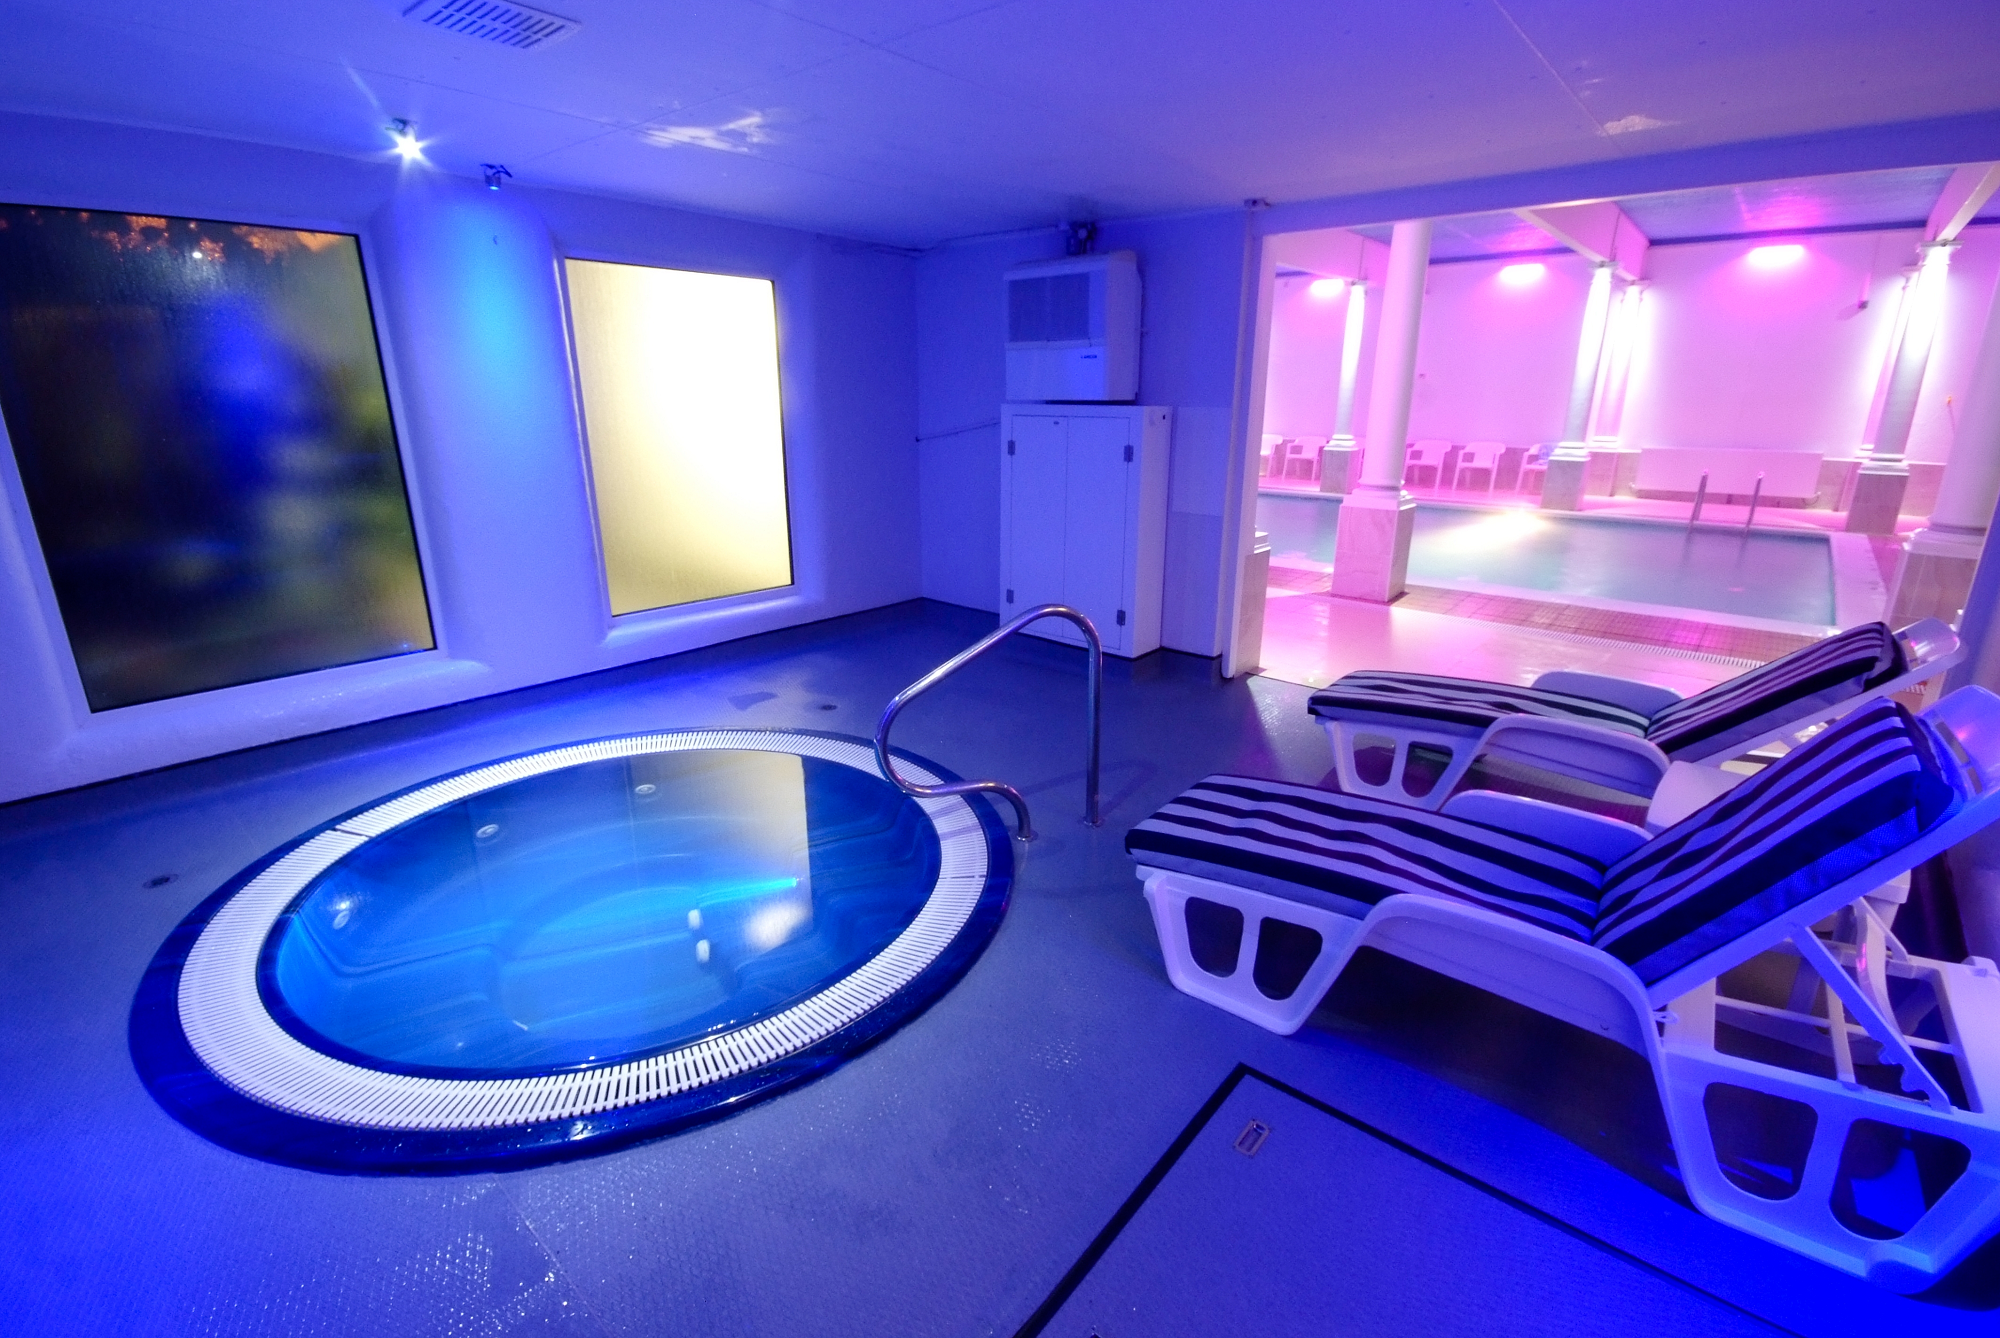 Jacuzzi Pool Gspa Gym And Leisure Club In Redruth Cornwall The Penventon